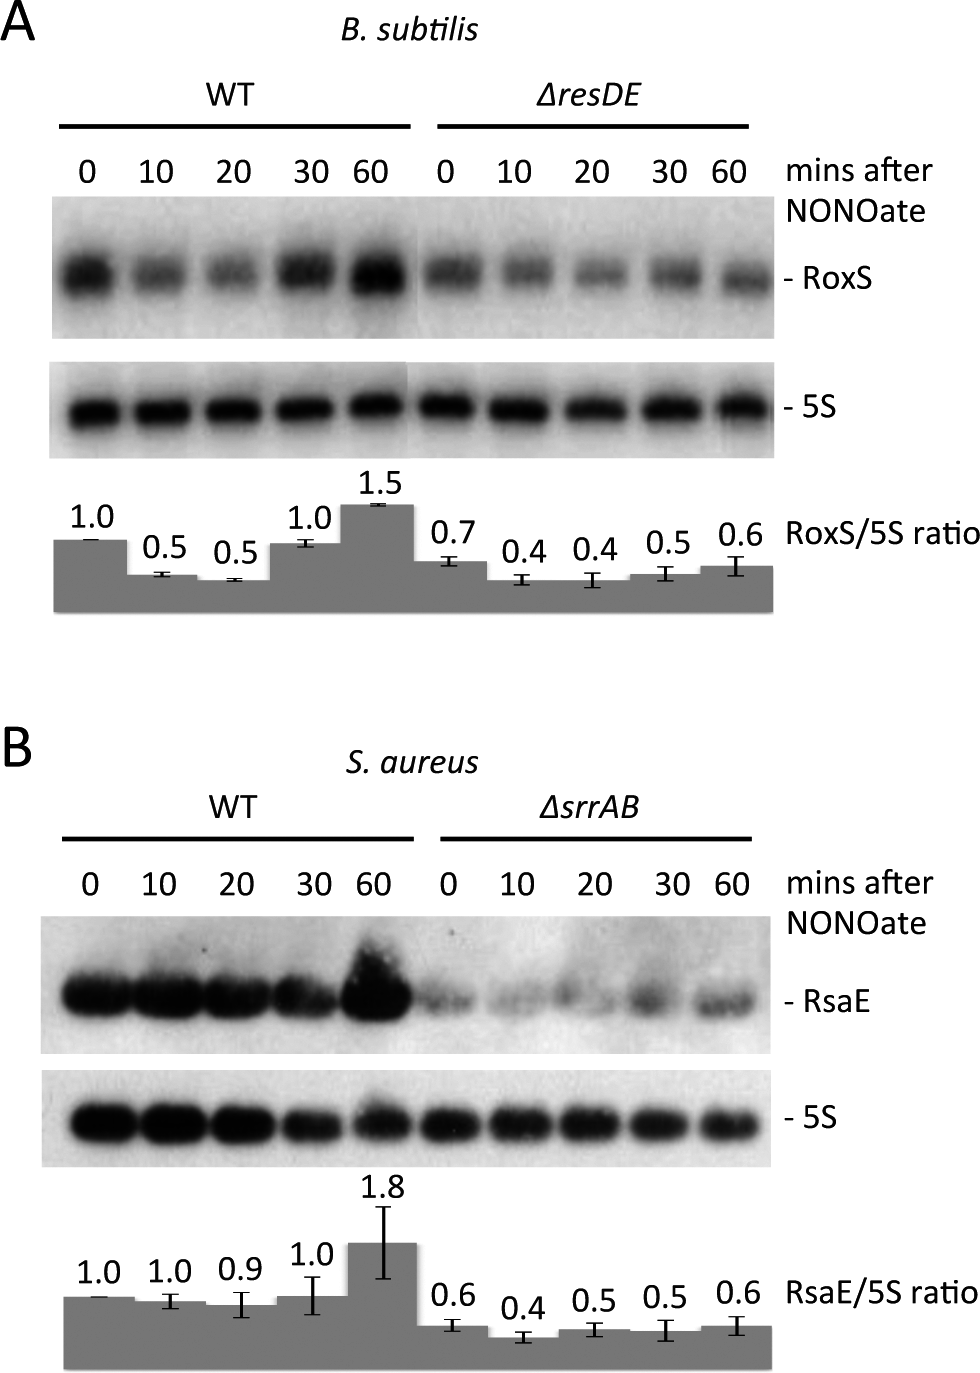 Nitric oxide dependent expression of RoxS in <i>B. subtilis</i> and <i>S. aureus</i>.